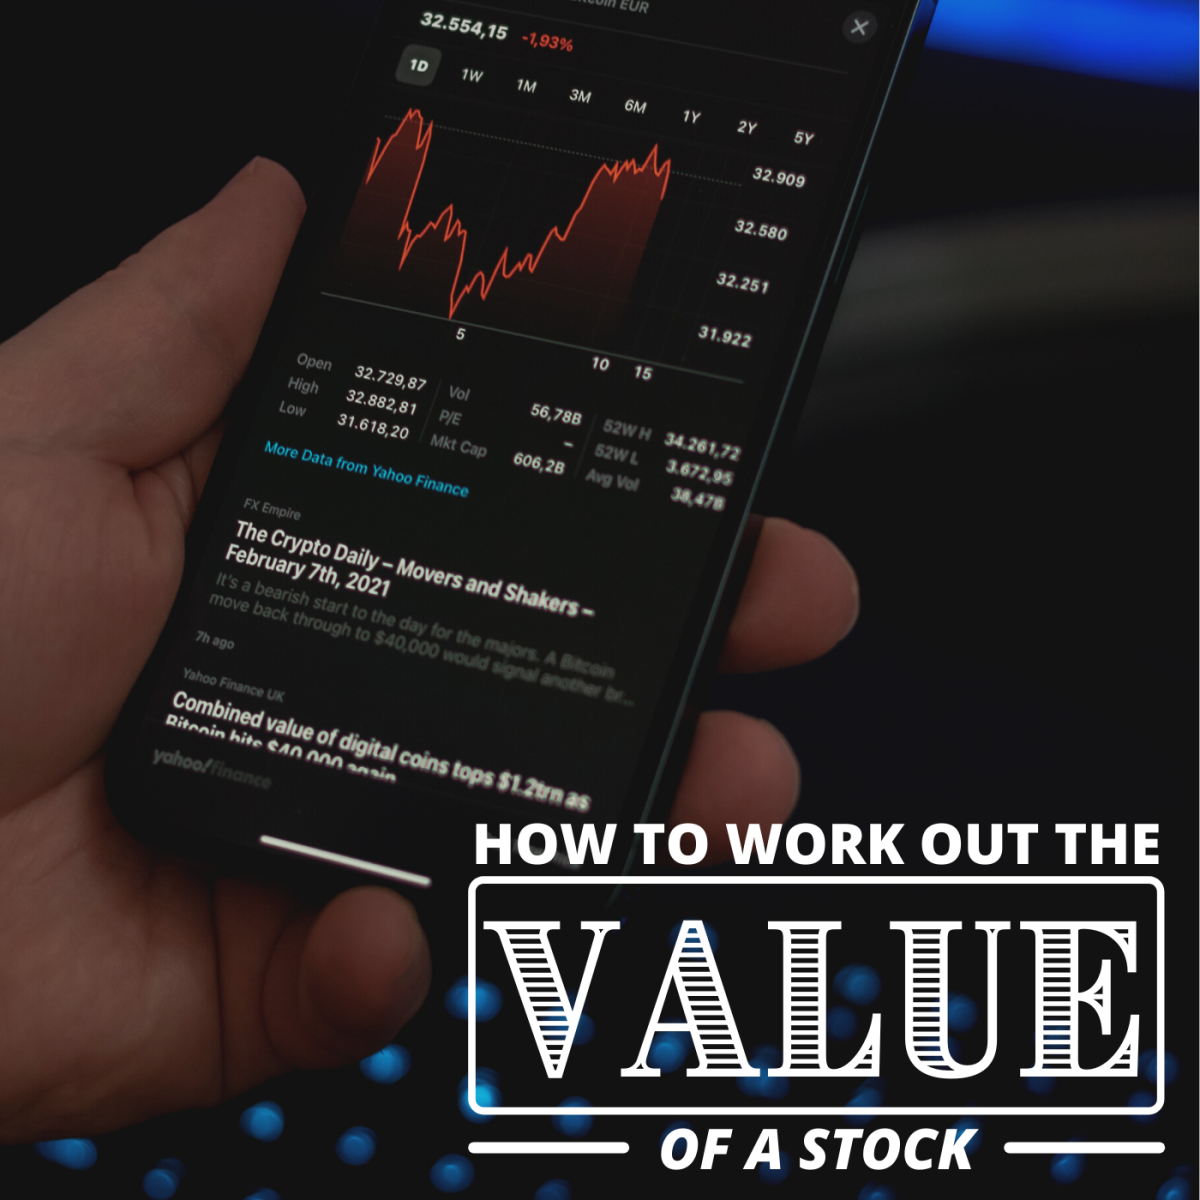 how do you know if the price a stock is trading at is a good deal?